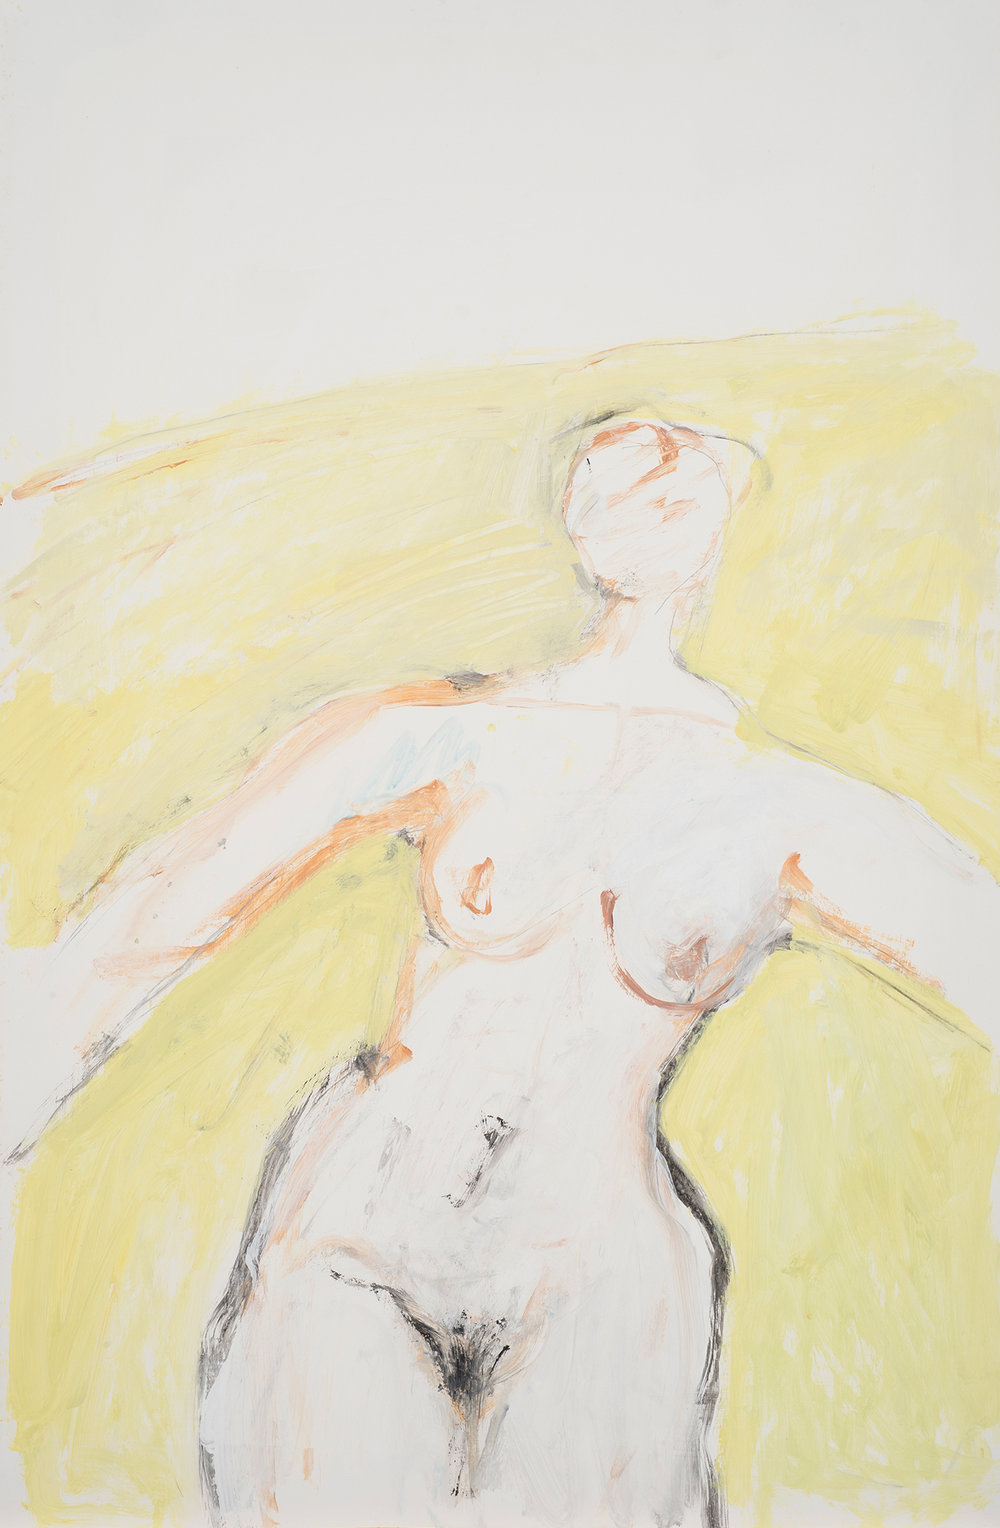 Untitled, 1986. Acrylic on paper. 35 x 23 in. (88.9x 58.42 cm.)